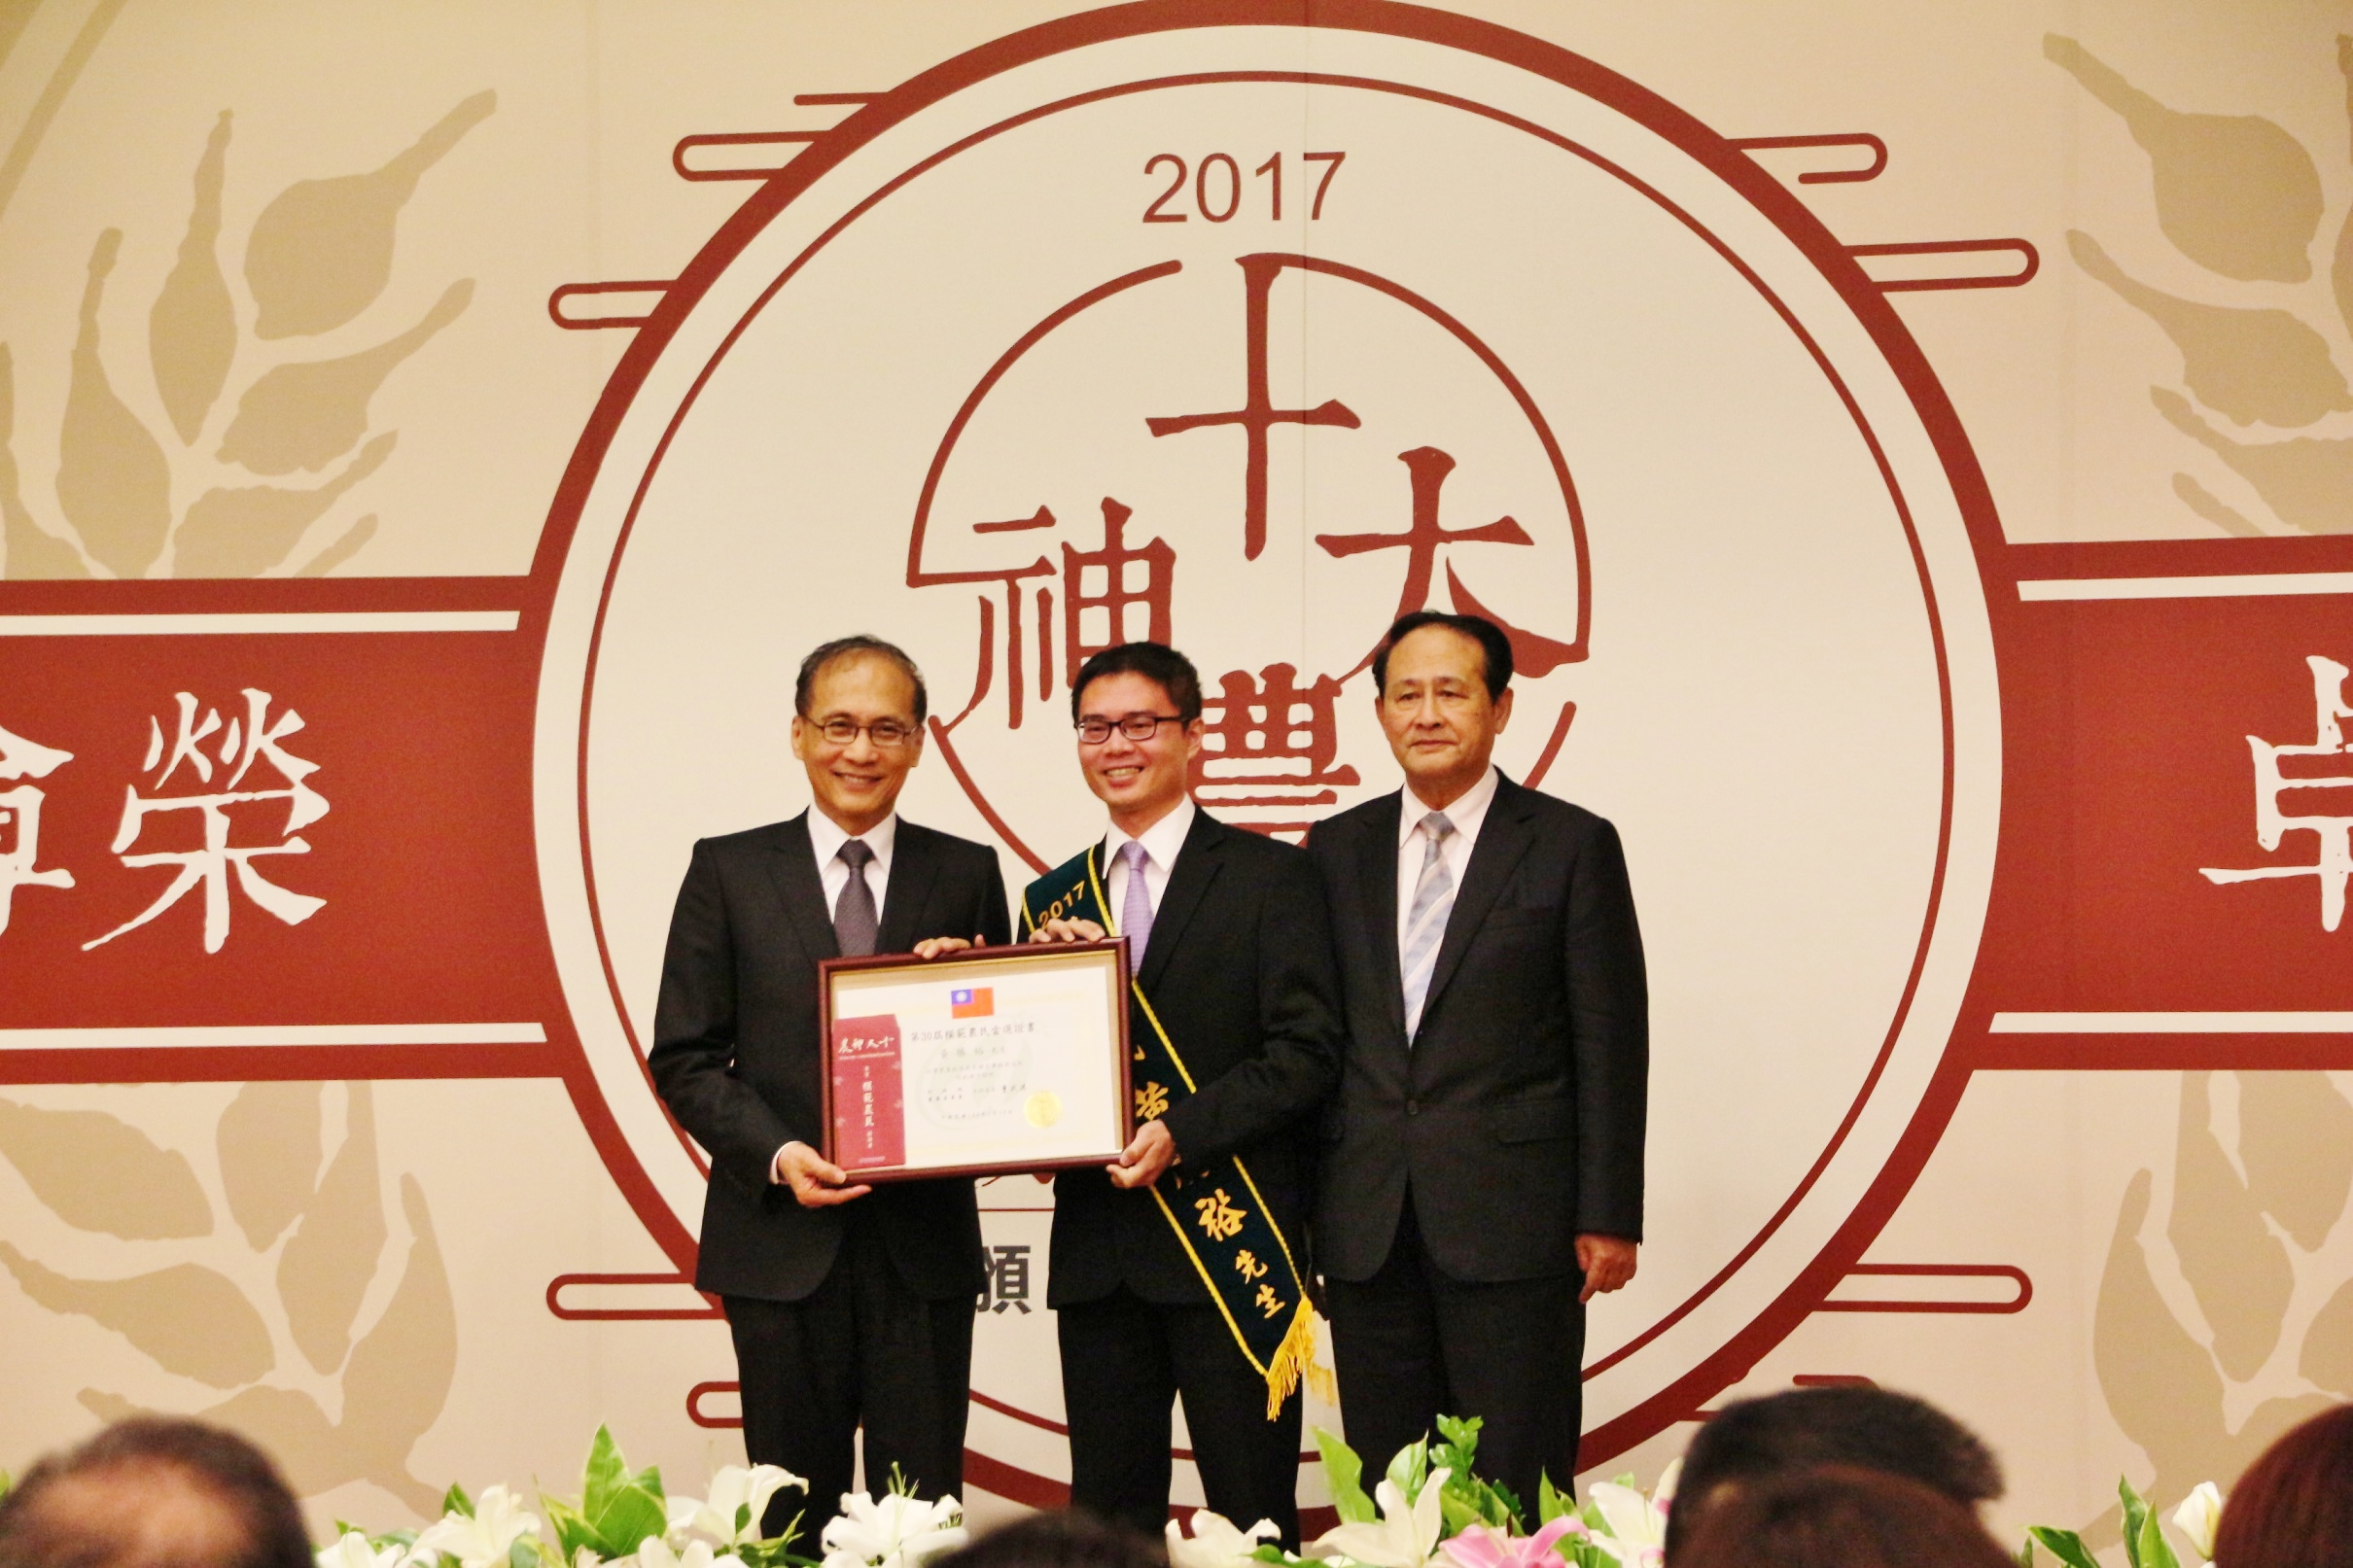 The photo shows broiler producer Huang Sheng-yu (center) receiving award from Premier Lin Chuan (left) and agricultural minister Tsao Chi-hung (right). (Taiwan News Photo by Sophia Yang)